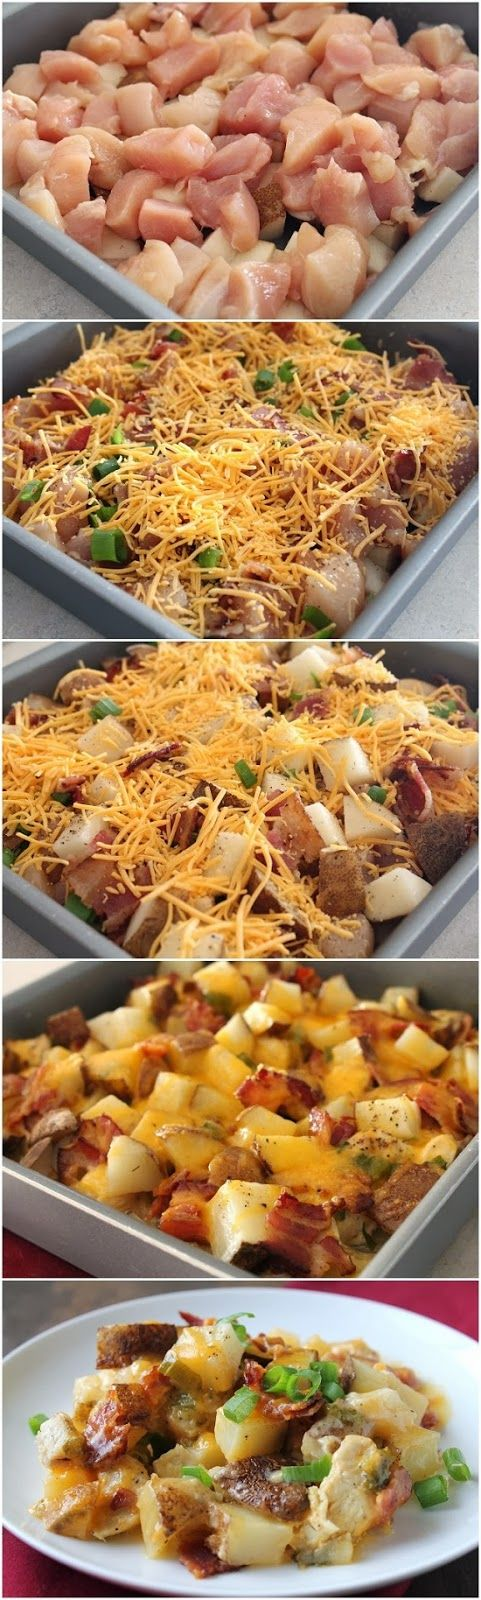 Loaded Baked Potato and Chicken Casserole. I need to make this